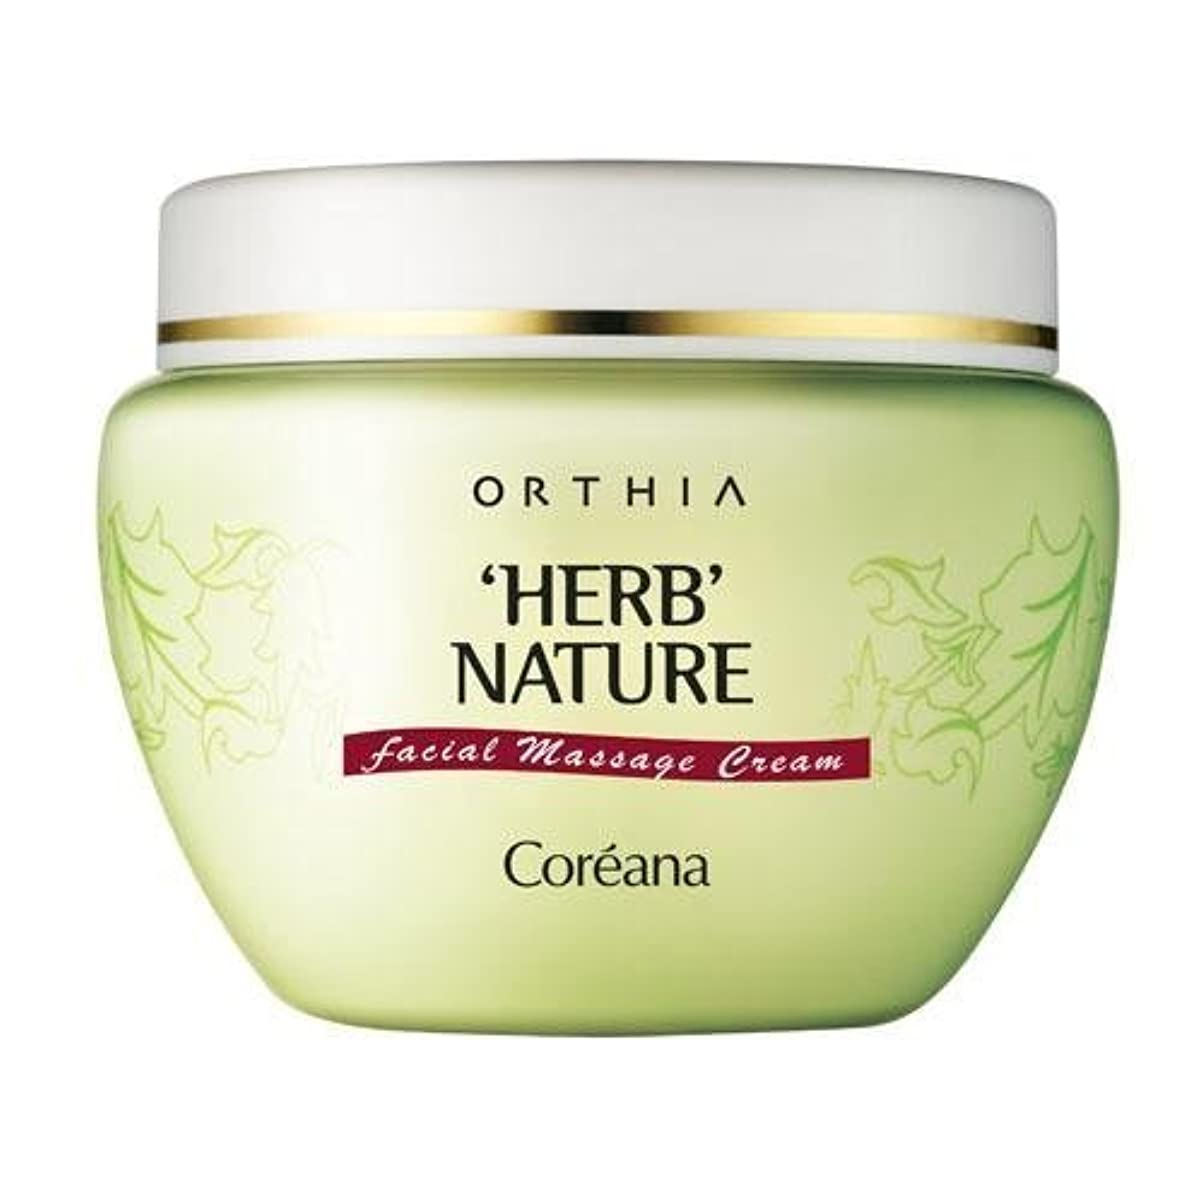 絶対に除外する不合格Orthia Herb Nature Massage Cream/ Made in Korea